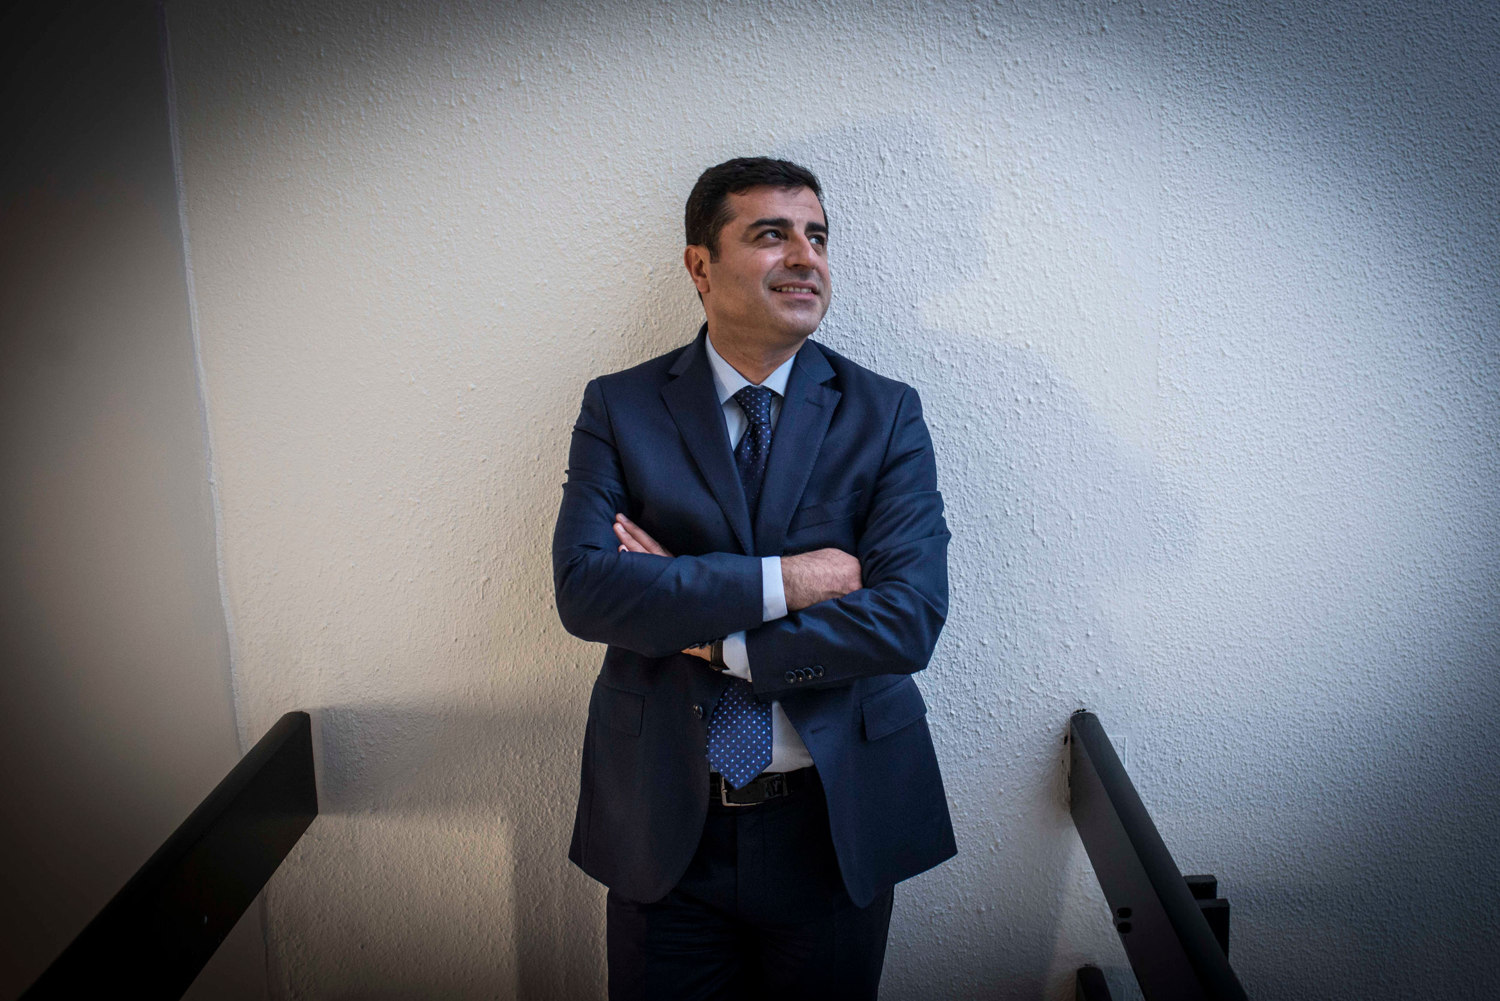 Selahattin Demirtaş is a Kurdish politician in Turkey, photographed for The New York Times.